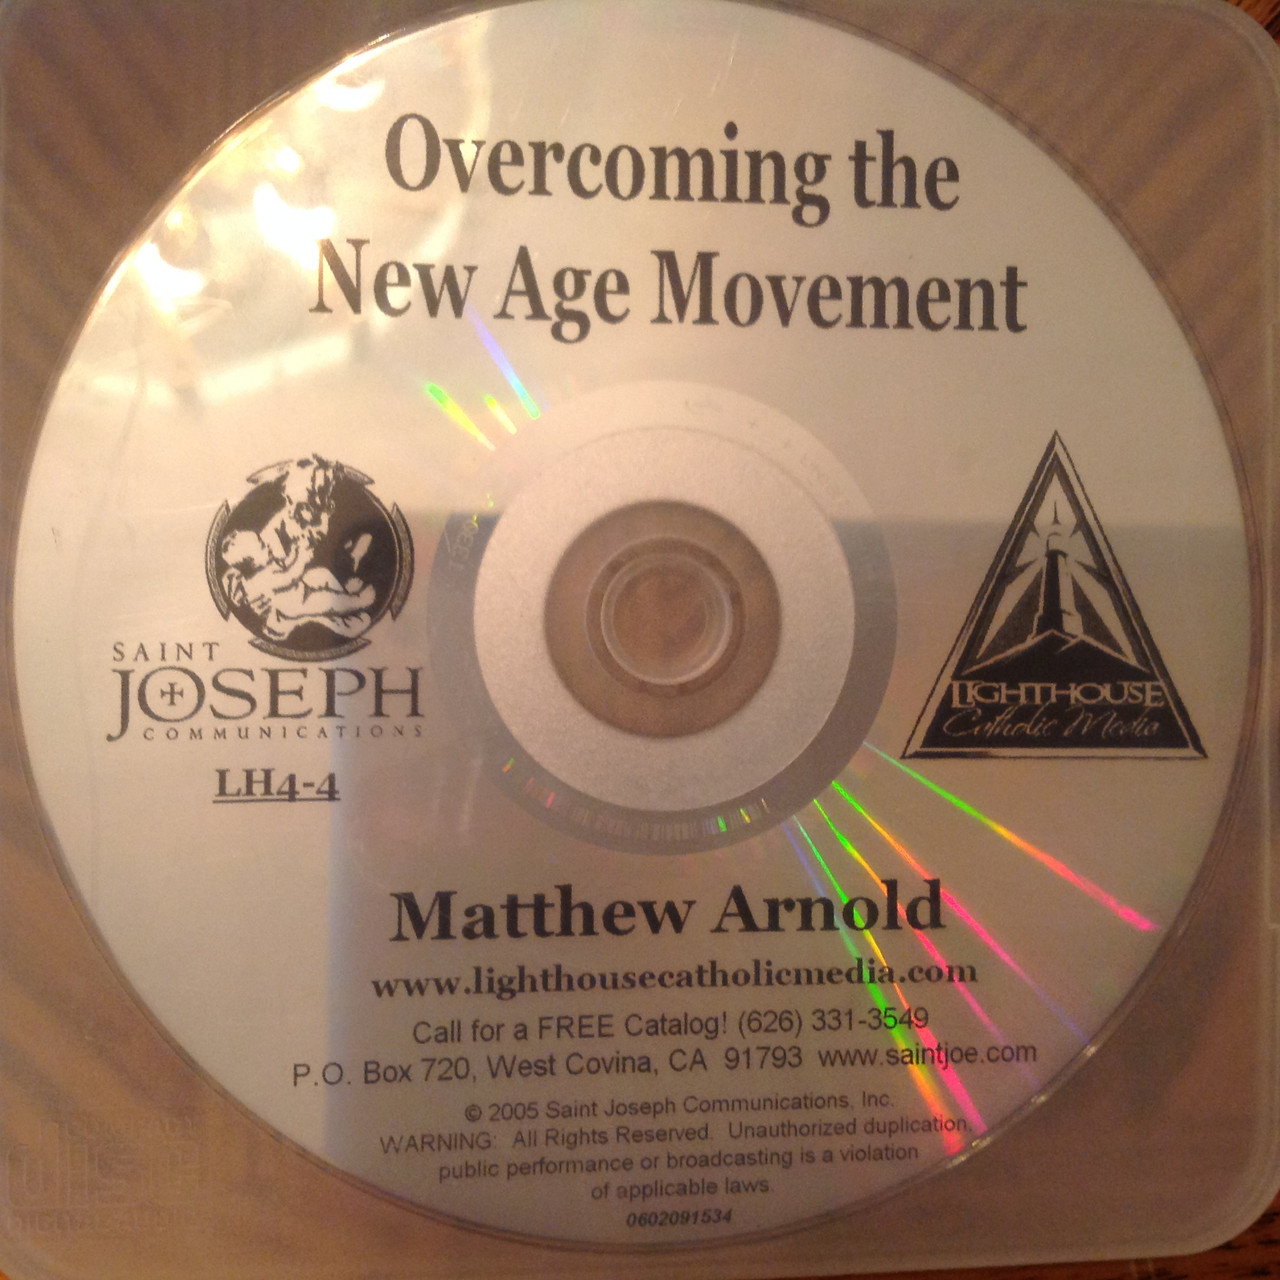 Overcoming the New Age Movement by Matthew Arnold CD